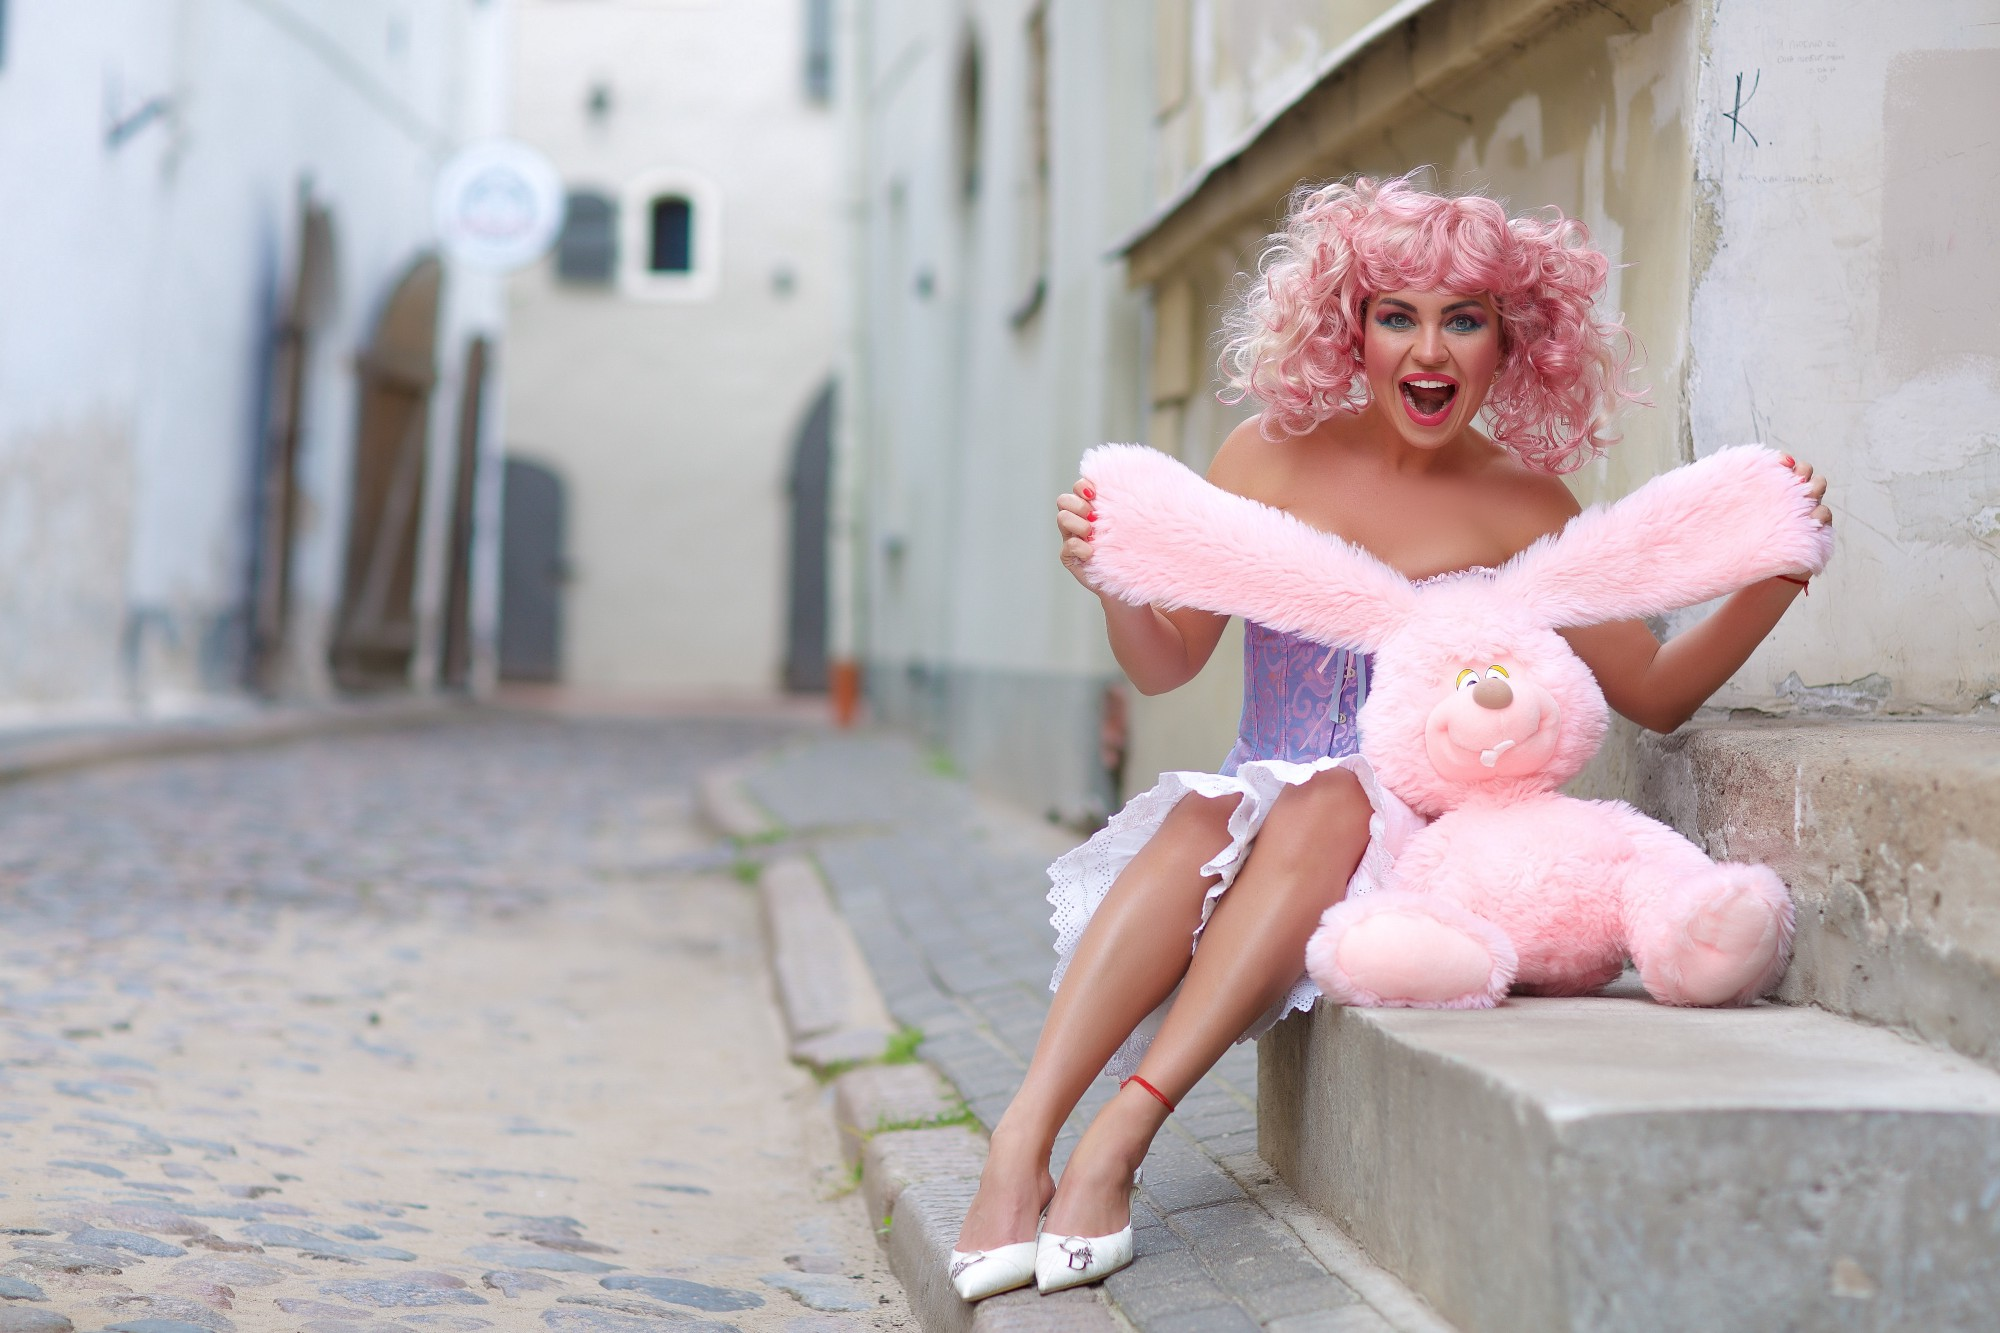 photo of smiling woman holding a pink bunny on a sidewalk